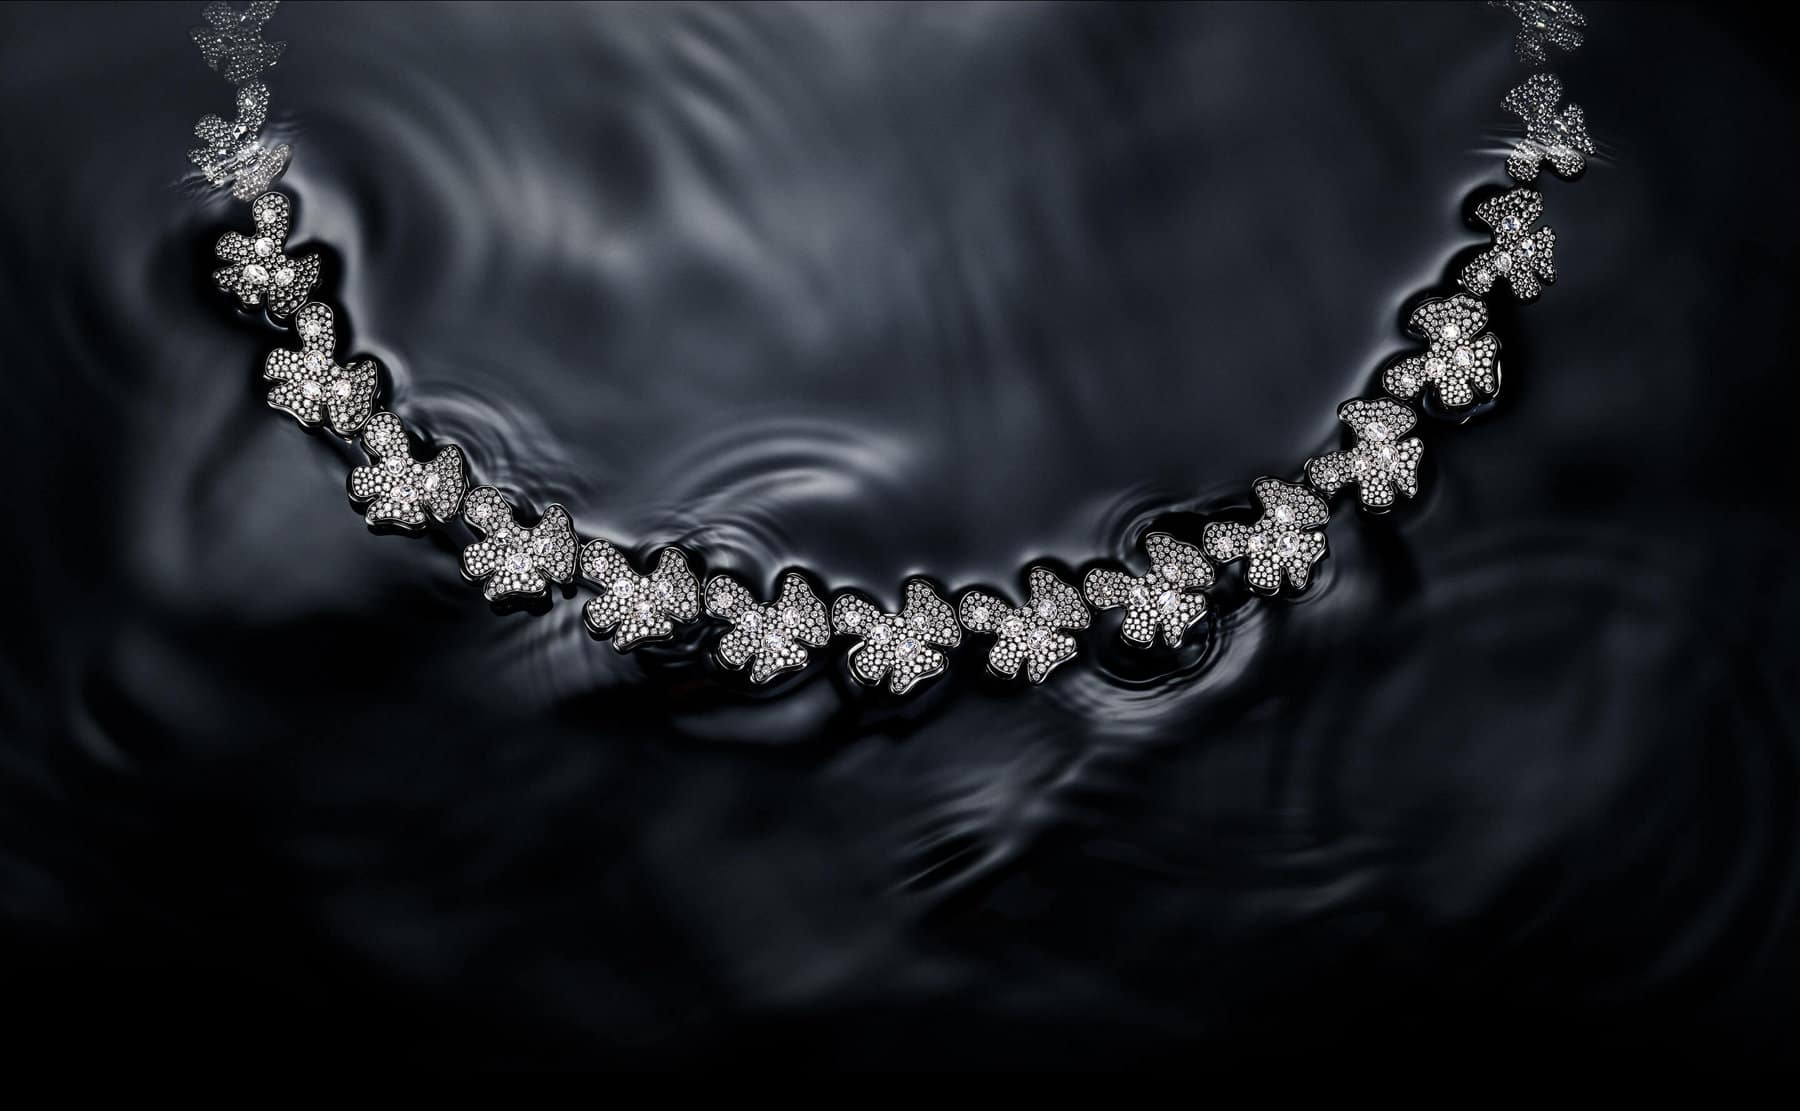 A color photo shows a David Yurman High Jewelry Petals necklace floating on water. Ripples surround the necklace, which is crafted from lily-pad-shaped stations of rhodium-plated 18K white gold encrusted with brilliant- and rose-cut white diamonds. Below the image of the necklace is another color photo showing a David Yurman Petals necklace created in the 1970s. The necklace is suspended in front of a black background reminiscent of a starry night sky. The necklace is crafted from lily-pad-shaped stations of bronze.